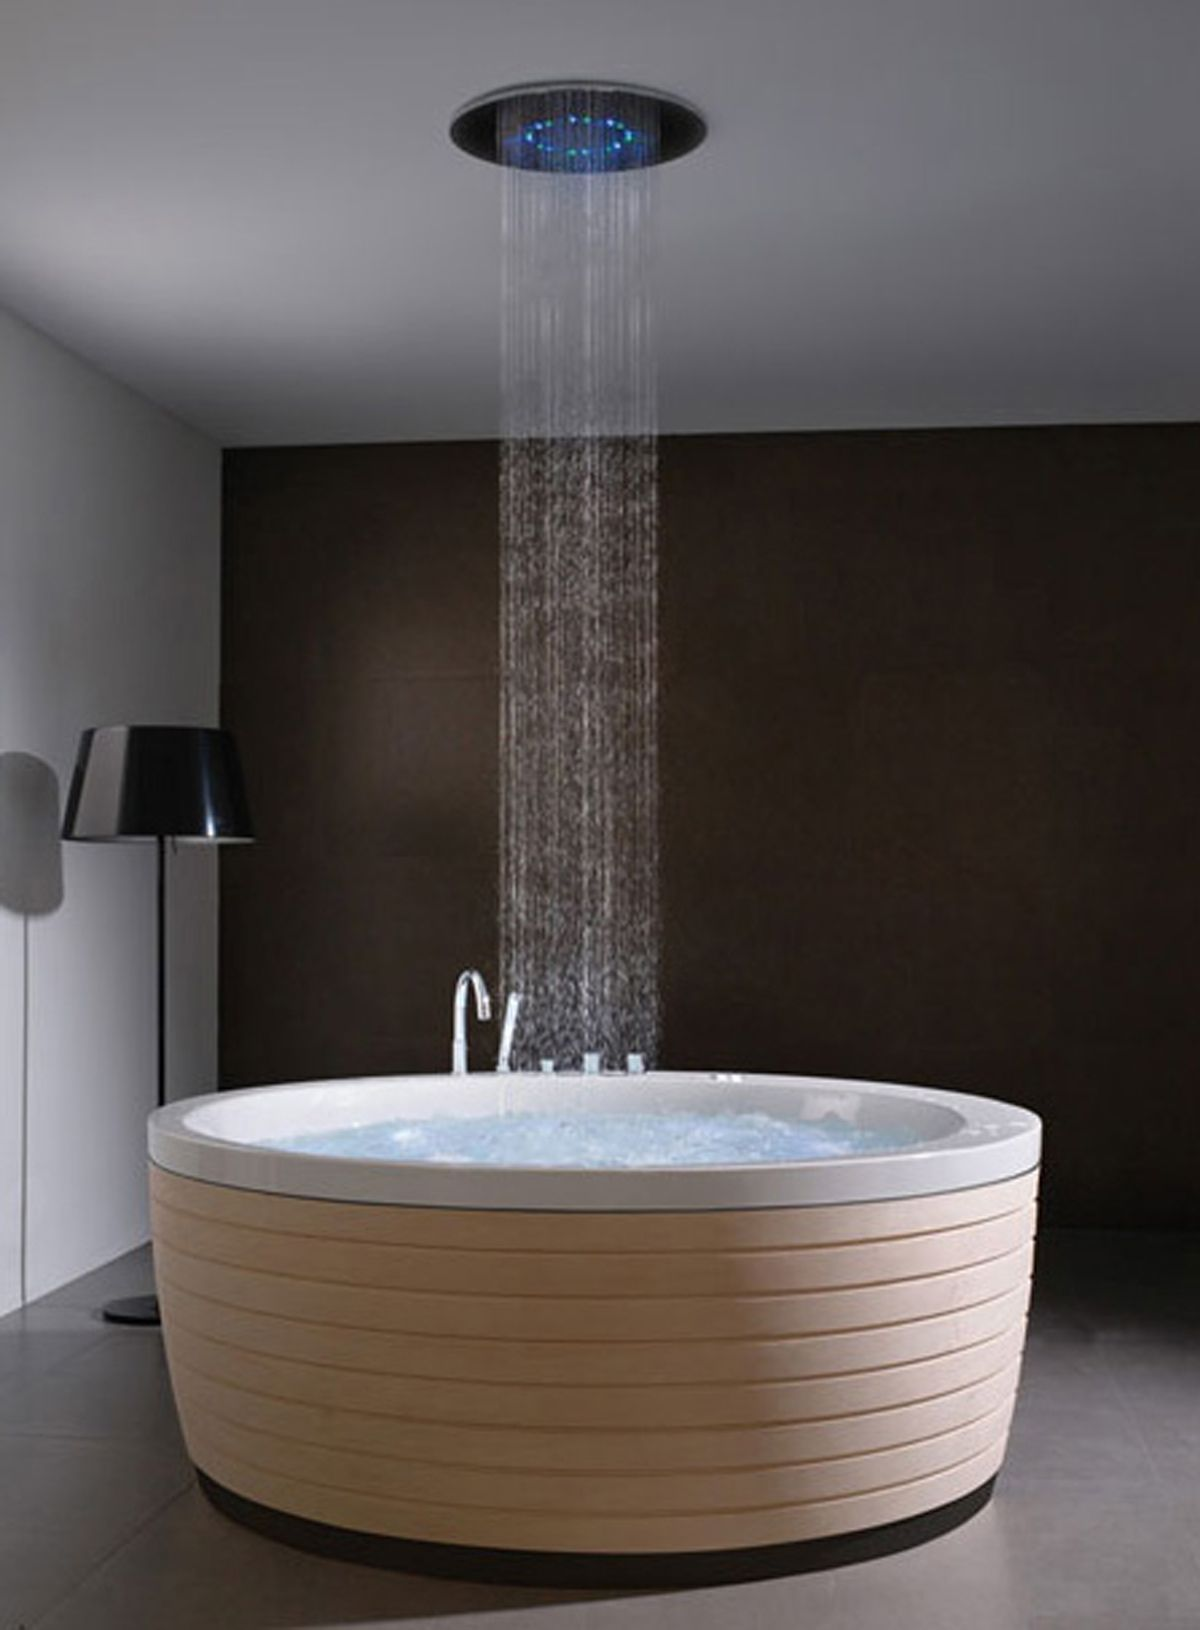 15 Incredible Freestanding Tubs With Showers House Design Bathtub Design Dream House